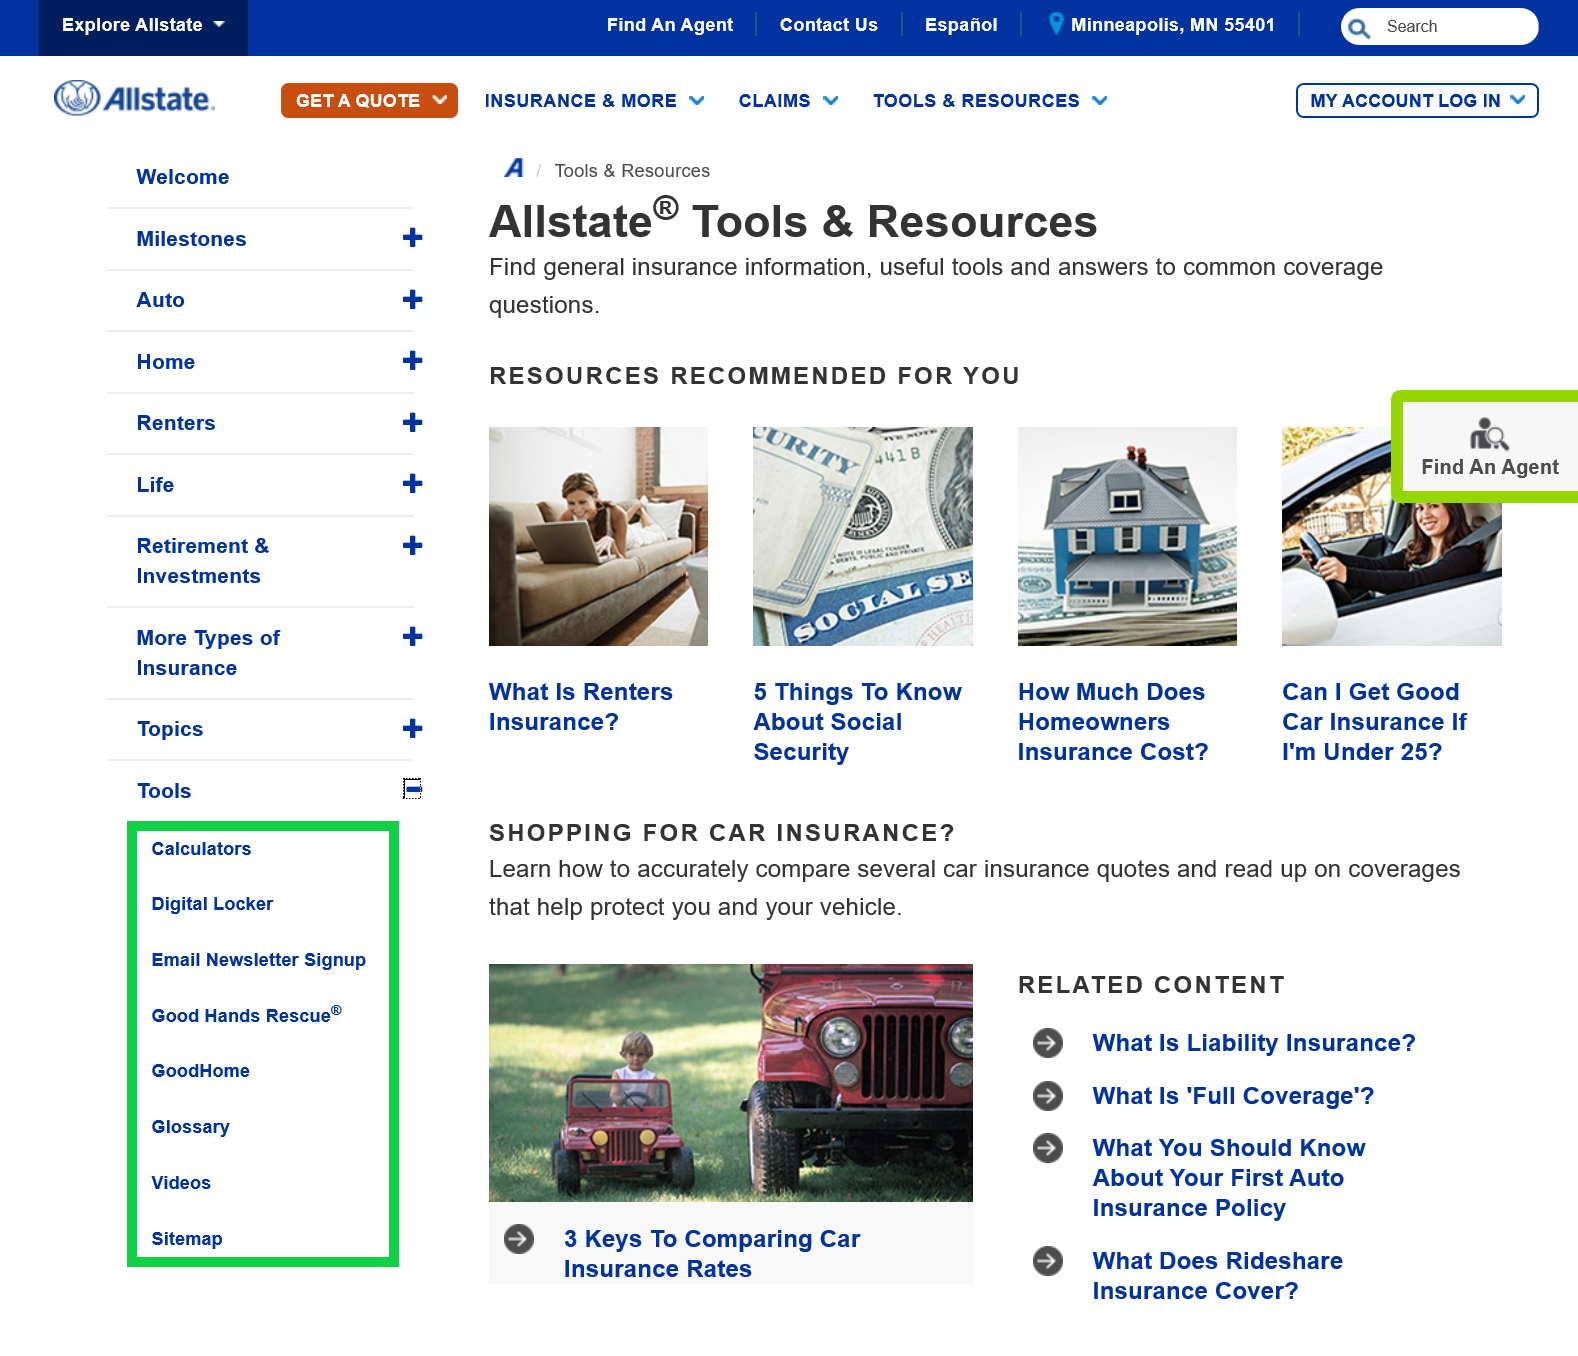 Allstate's Tools and Resources 4